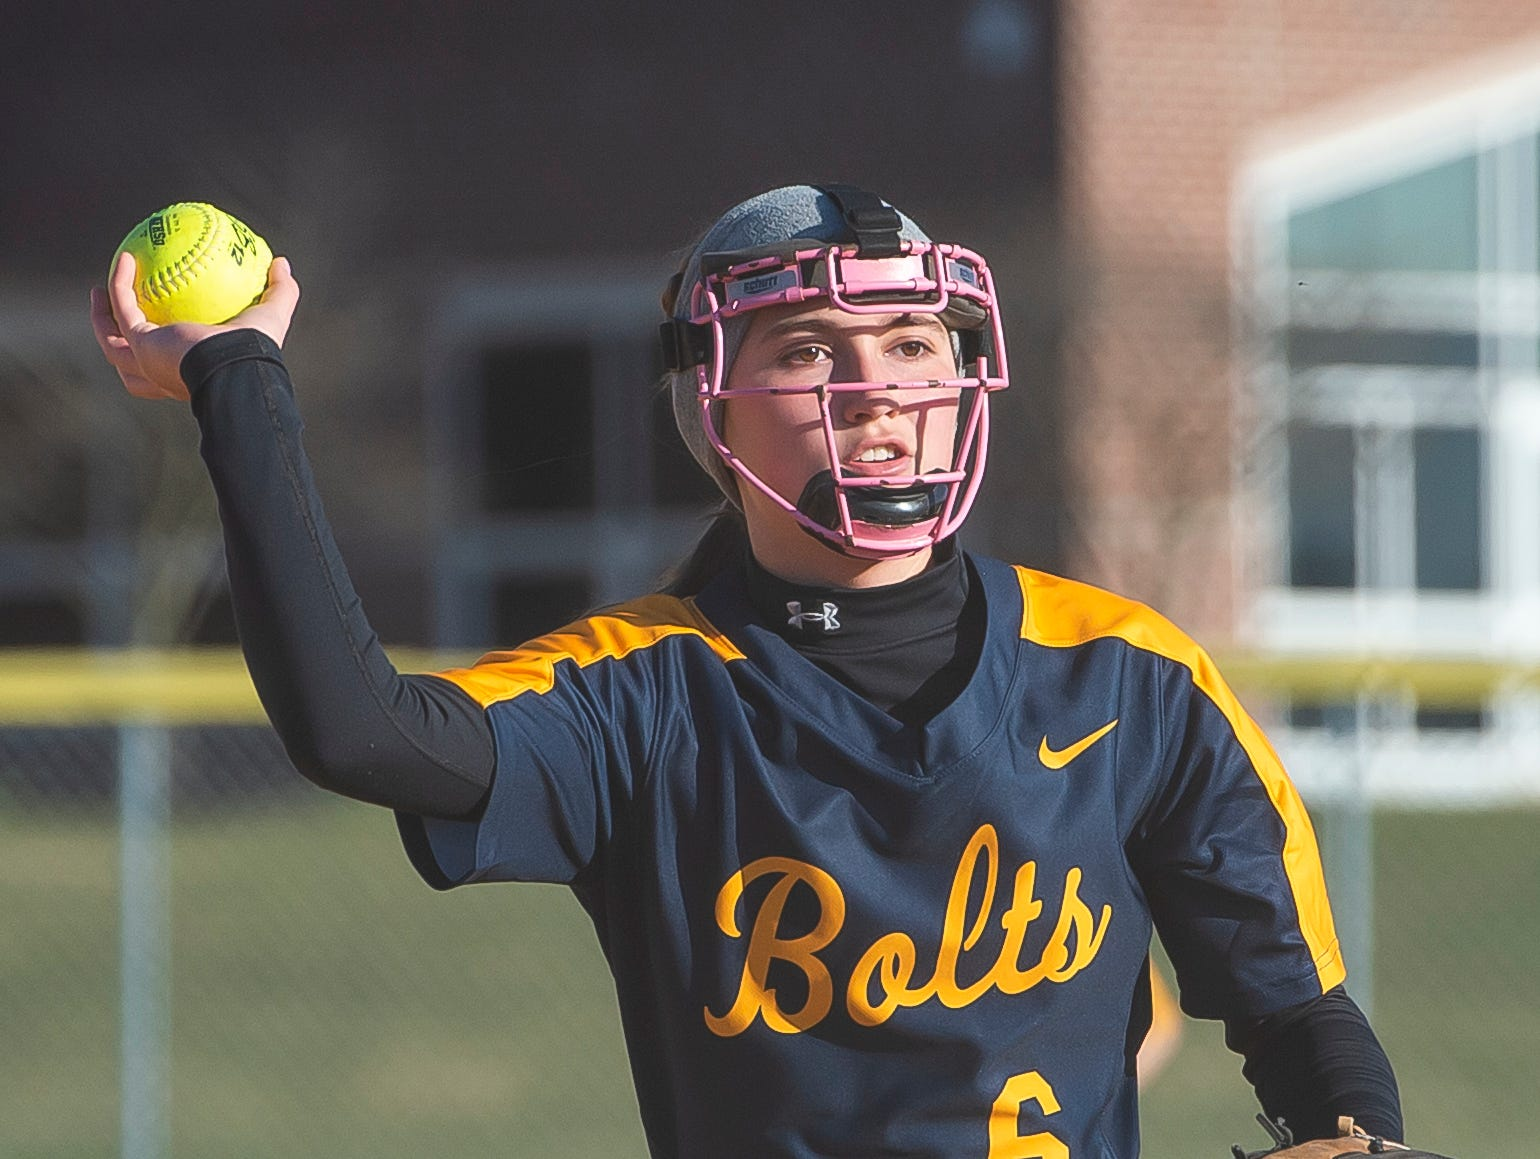 Littlestown's Carter Clabaugh throws the ball to first after fielding a ground ball during a YAIAA softball game against Gettysburg on Monday, April 1, 2019. The Bolts won 10-4.